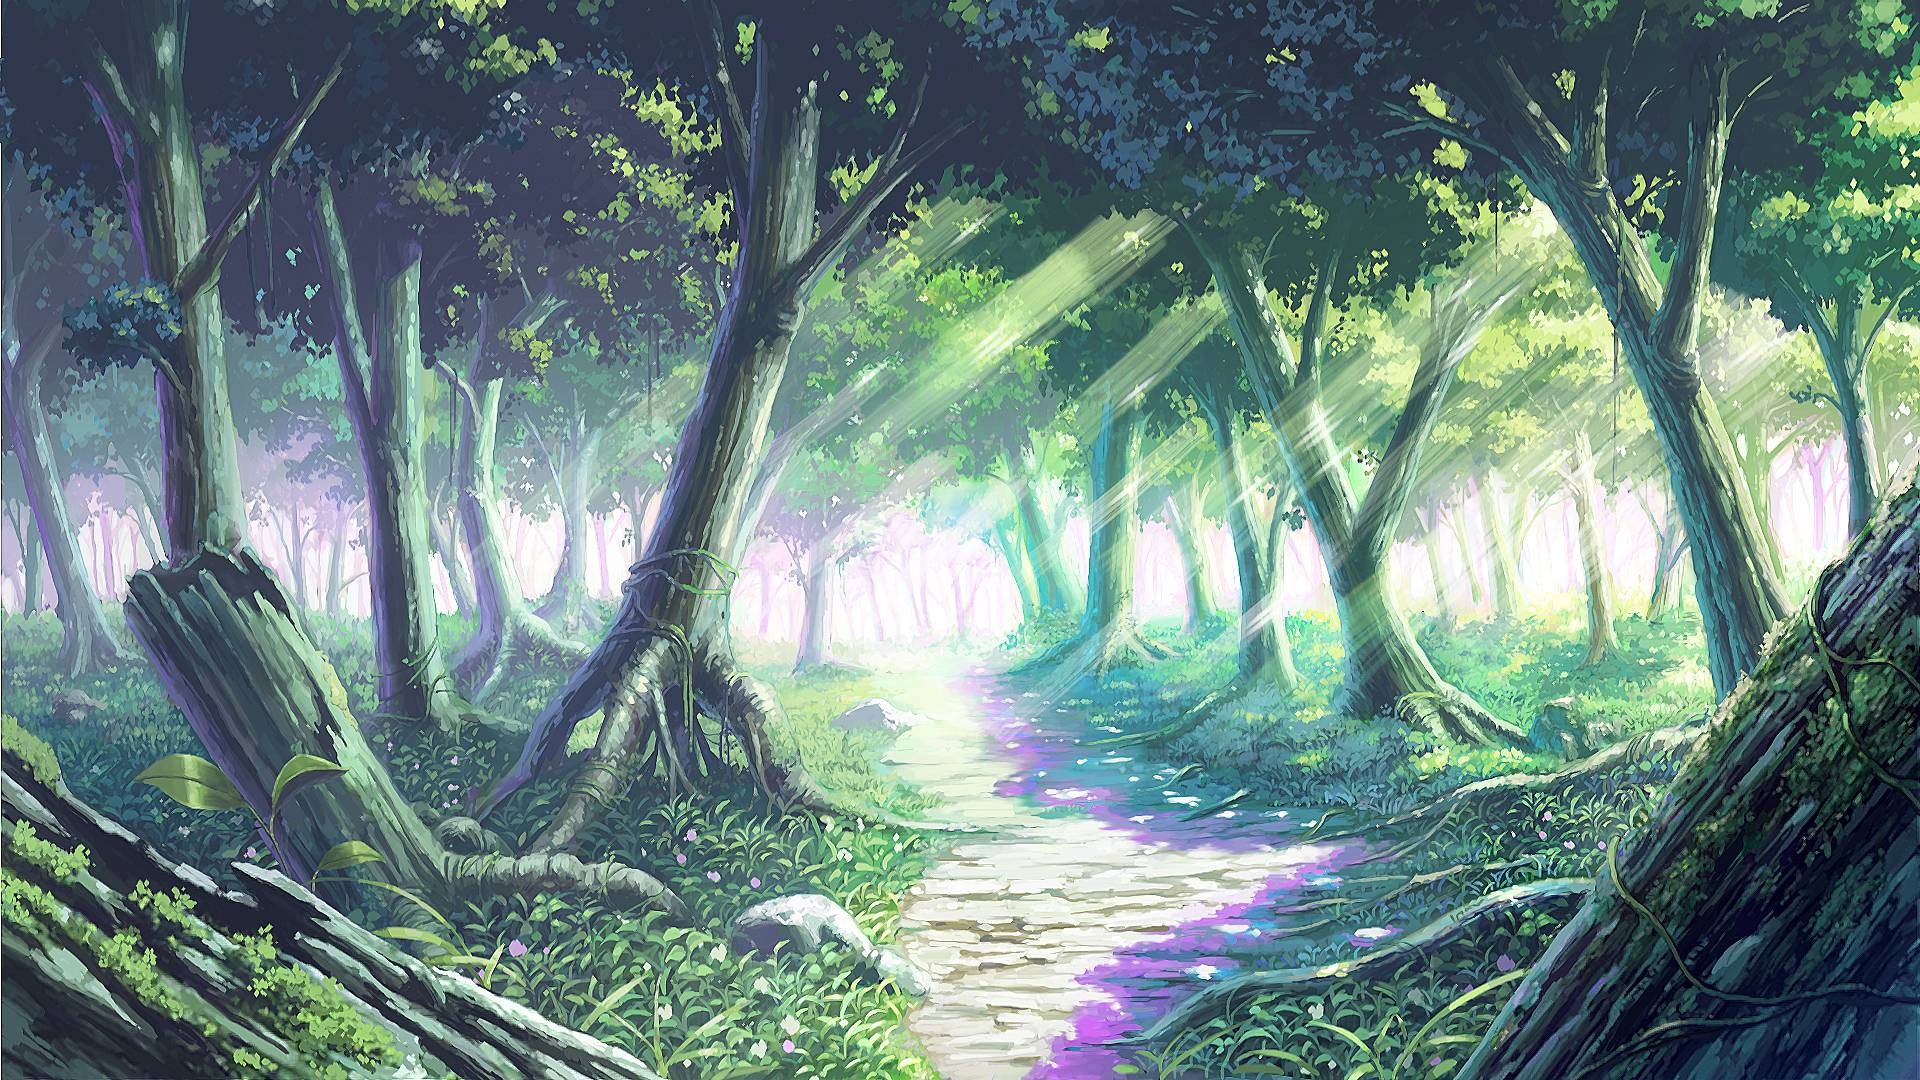 Anime Forest Wallpapers   Top Anime Forest Backgrounds 1920x1080